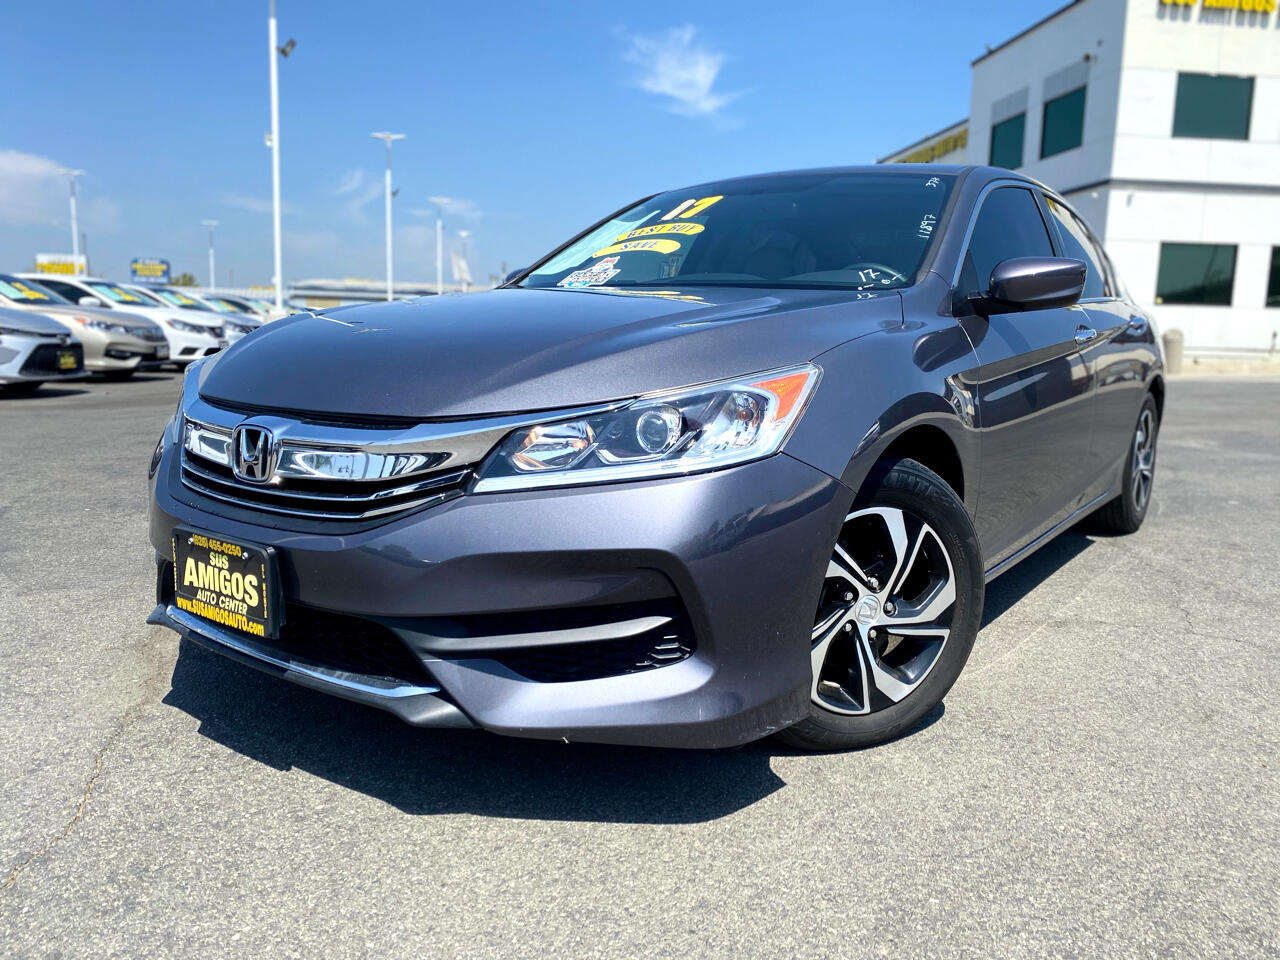 Honda Accord Sedan LX CVT 2017